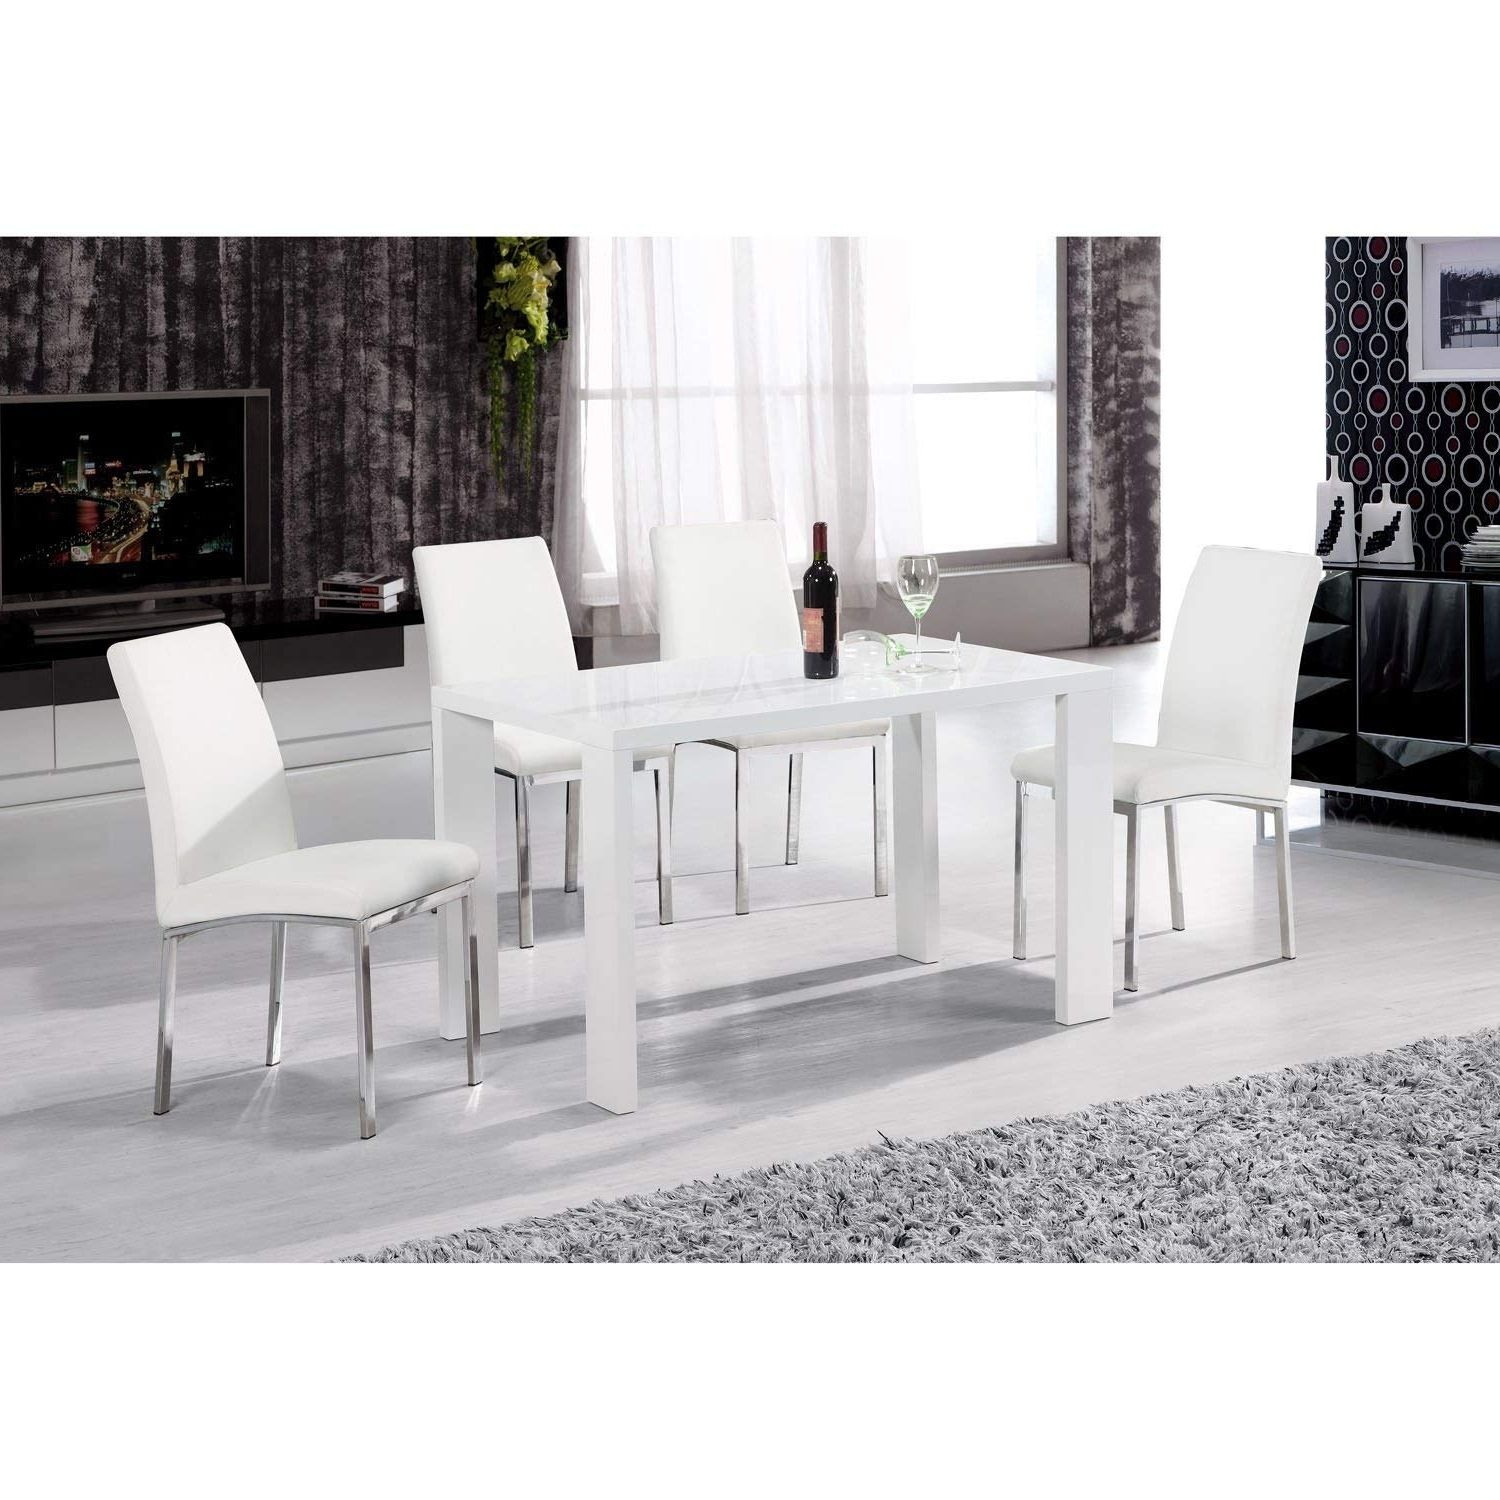 Current Heartlands Peru White High Gloss 130Cm Dining Table In Wood Within High Gloss Dining Furniture (View 22 of 25)